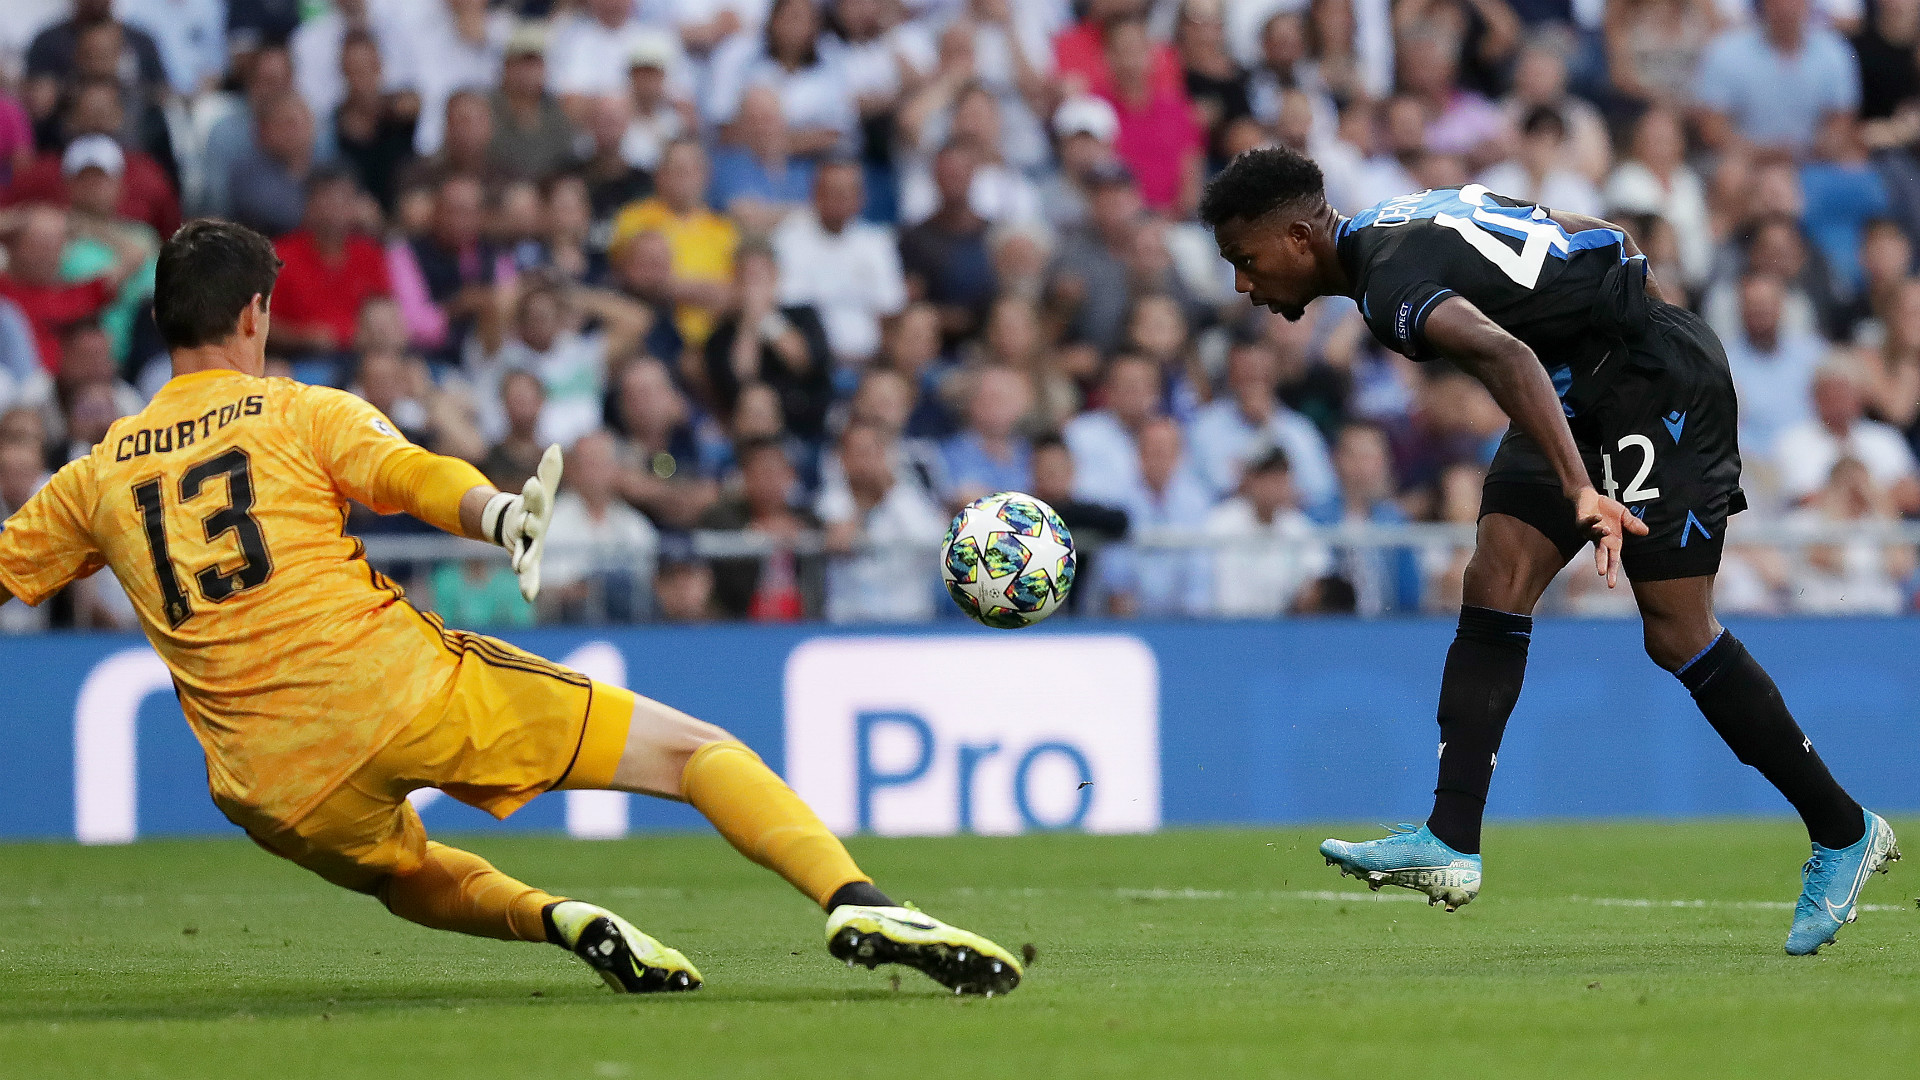 THIBAUT COURTOIS REAL MADRID EMMANUEL DENNIS CLUB BRUGGE UEFA CHAMPIONS LEAGUE 01102019